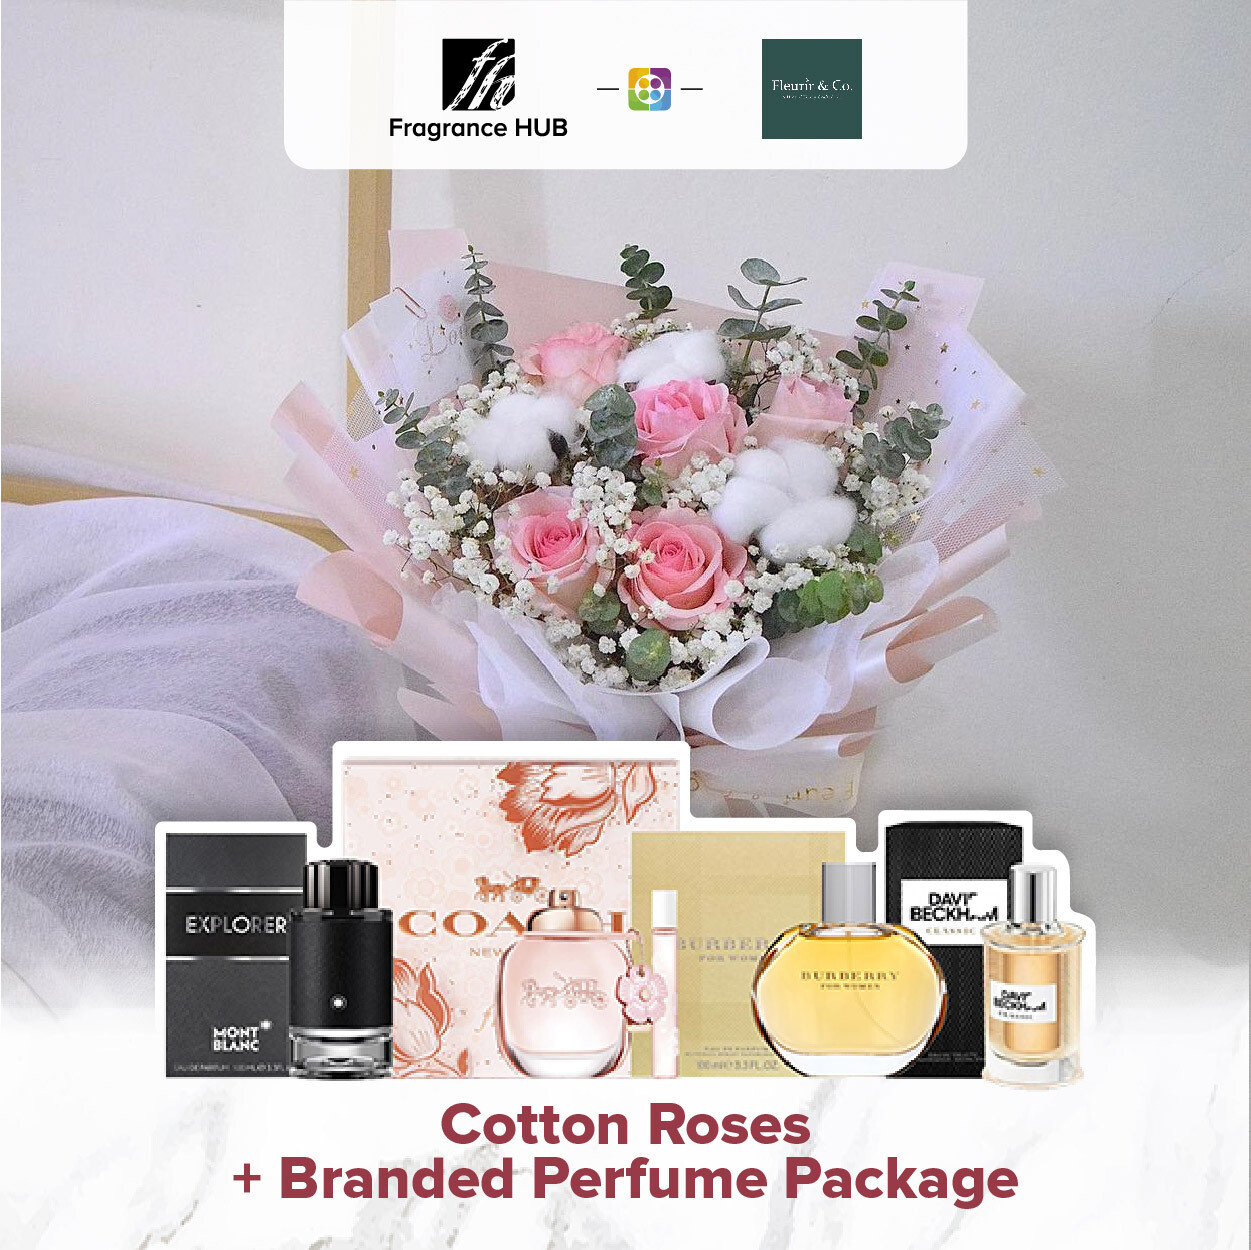 Cotton Roses + Fragrance Hub Branded Perfume (By: Fleurir & Co from Kuching)